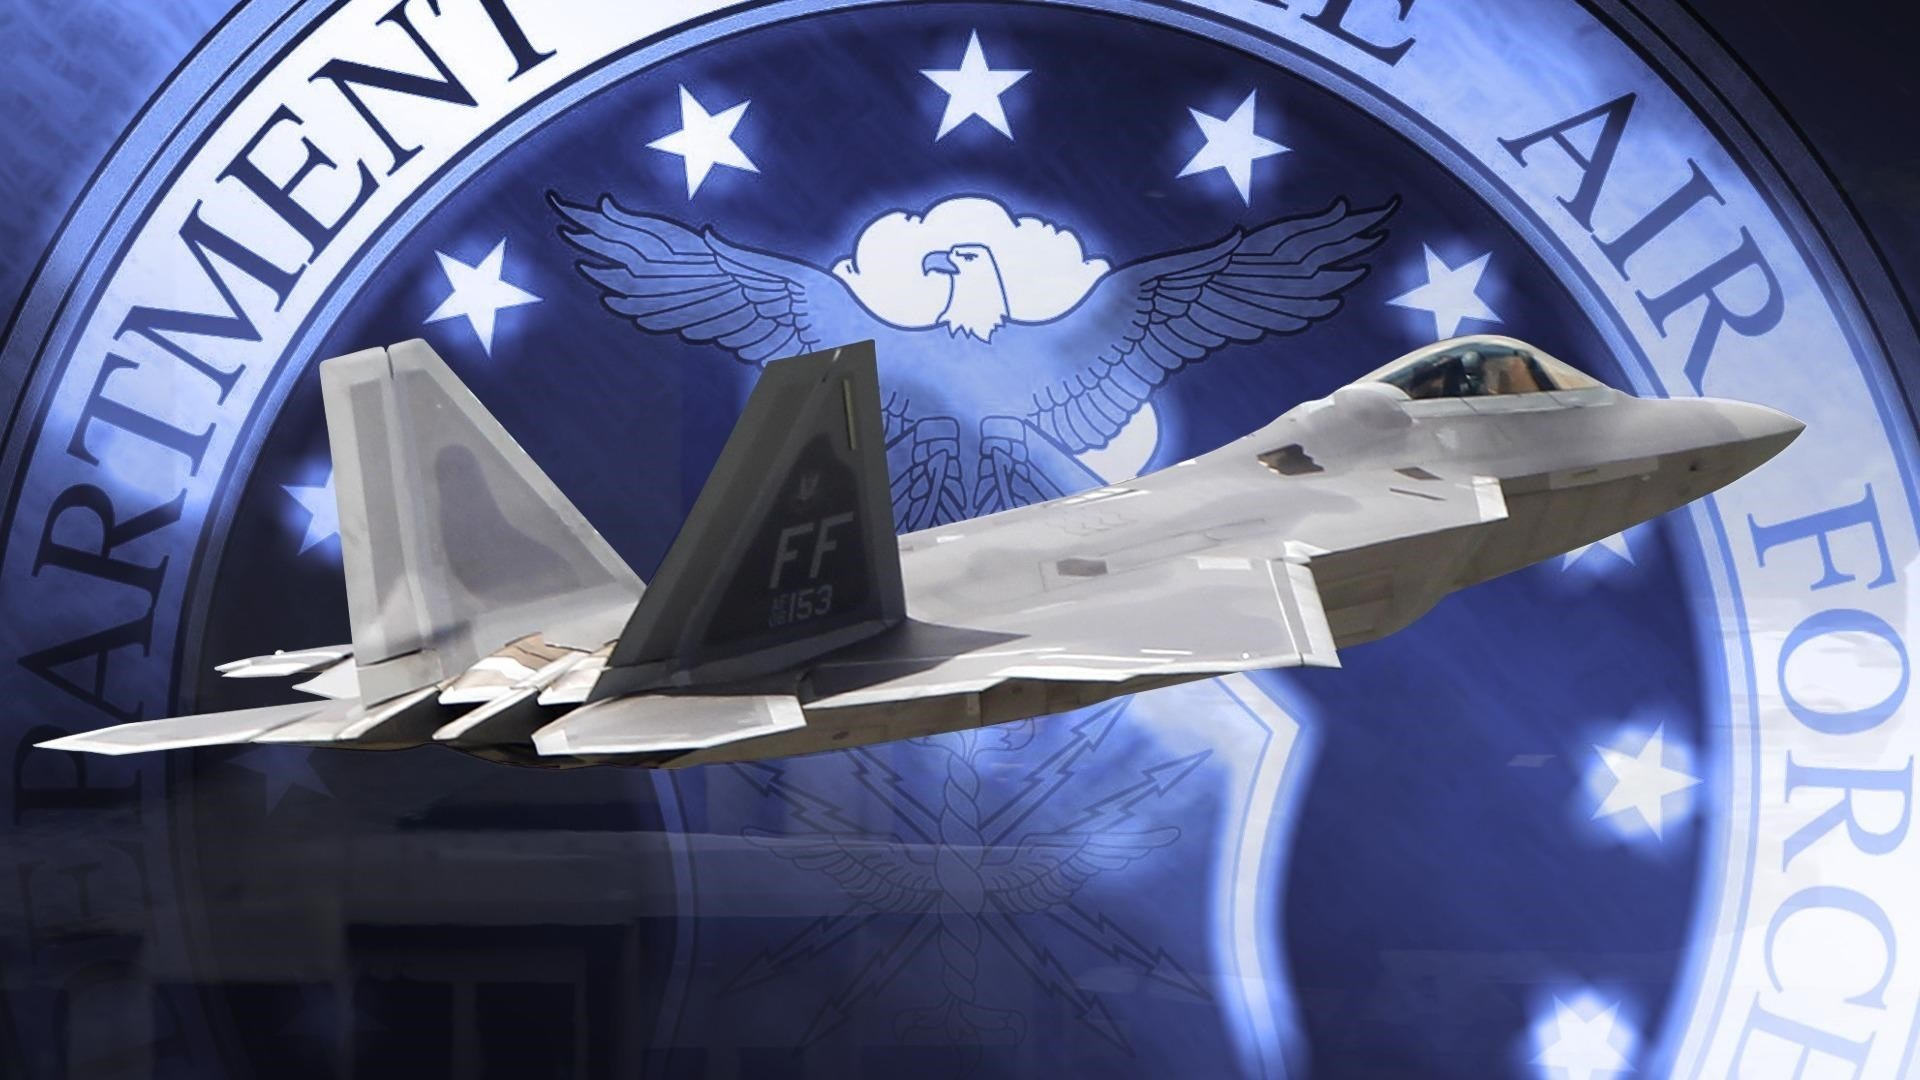 US Air Force scrambles two stealth fighter jets to intercept Russian bombers